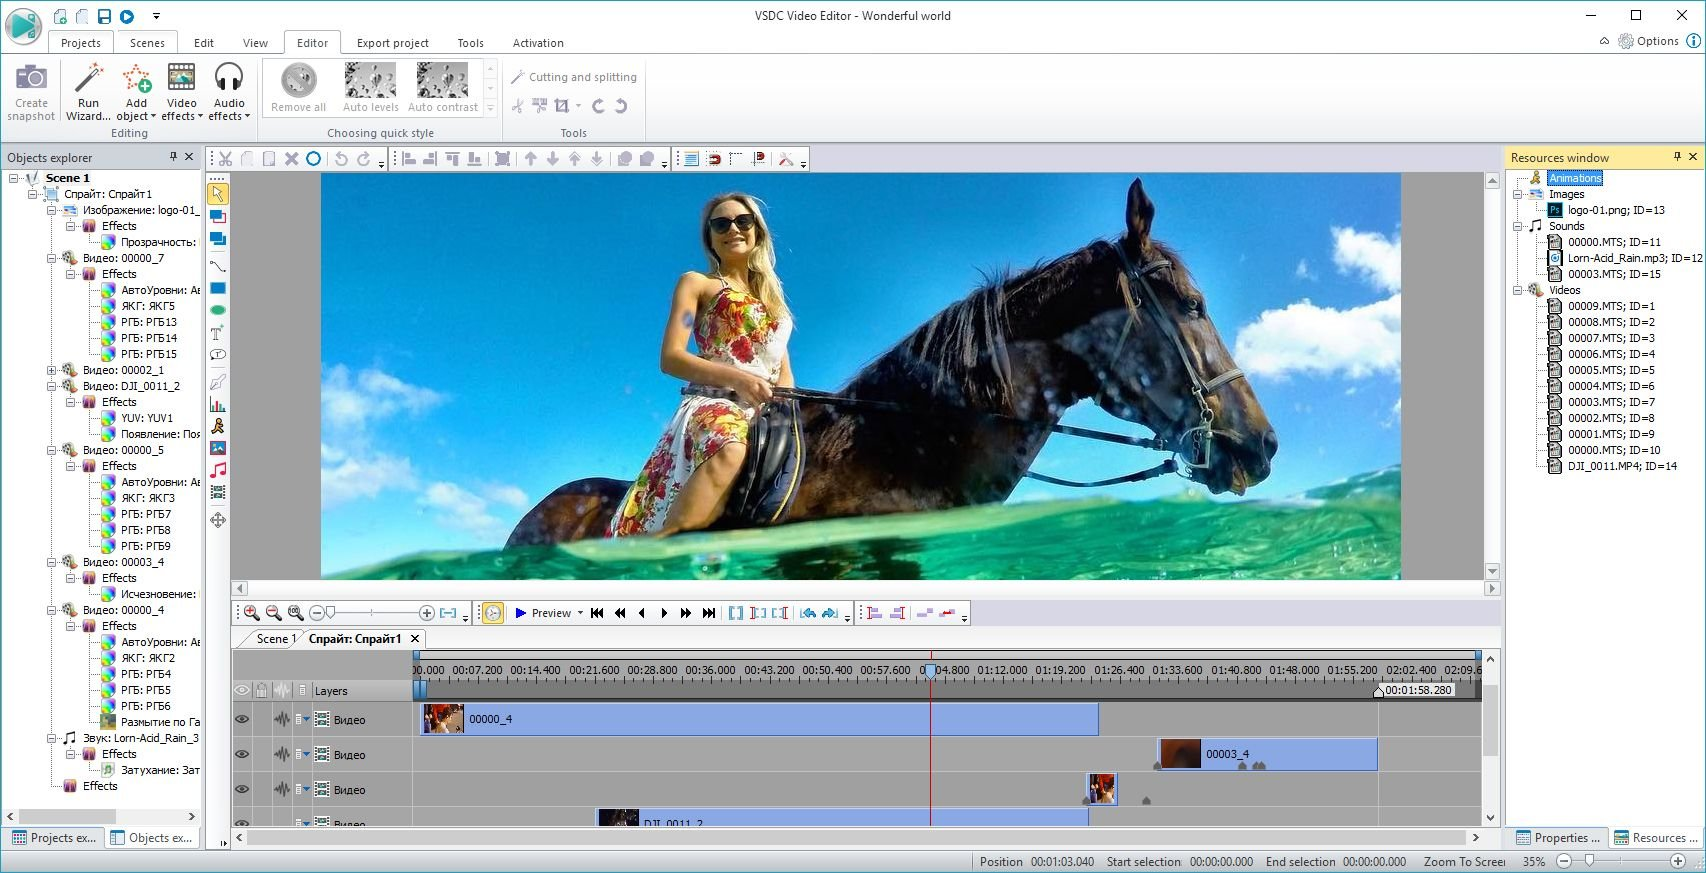 VSDC Free Video Editor 6 3 8 Free Download - VideoHelp